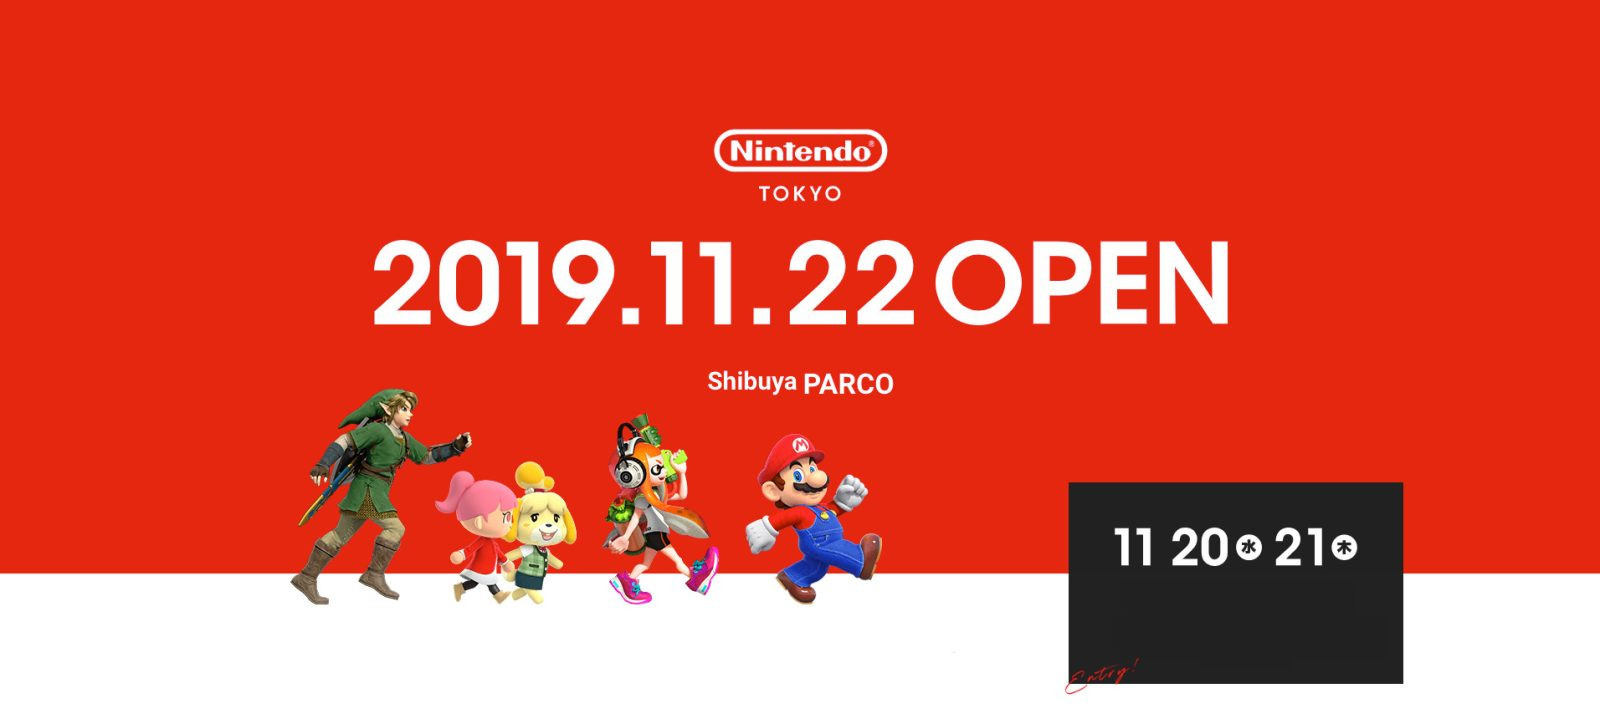 Feast your eyes on the new Nintendo Tokyo shop merchandise